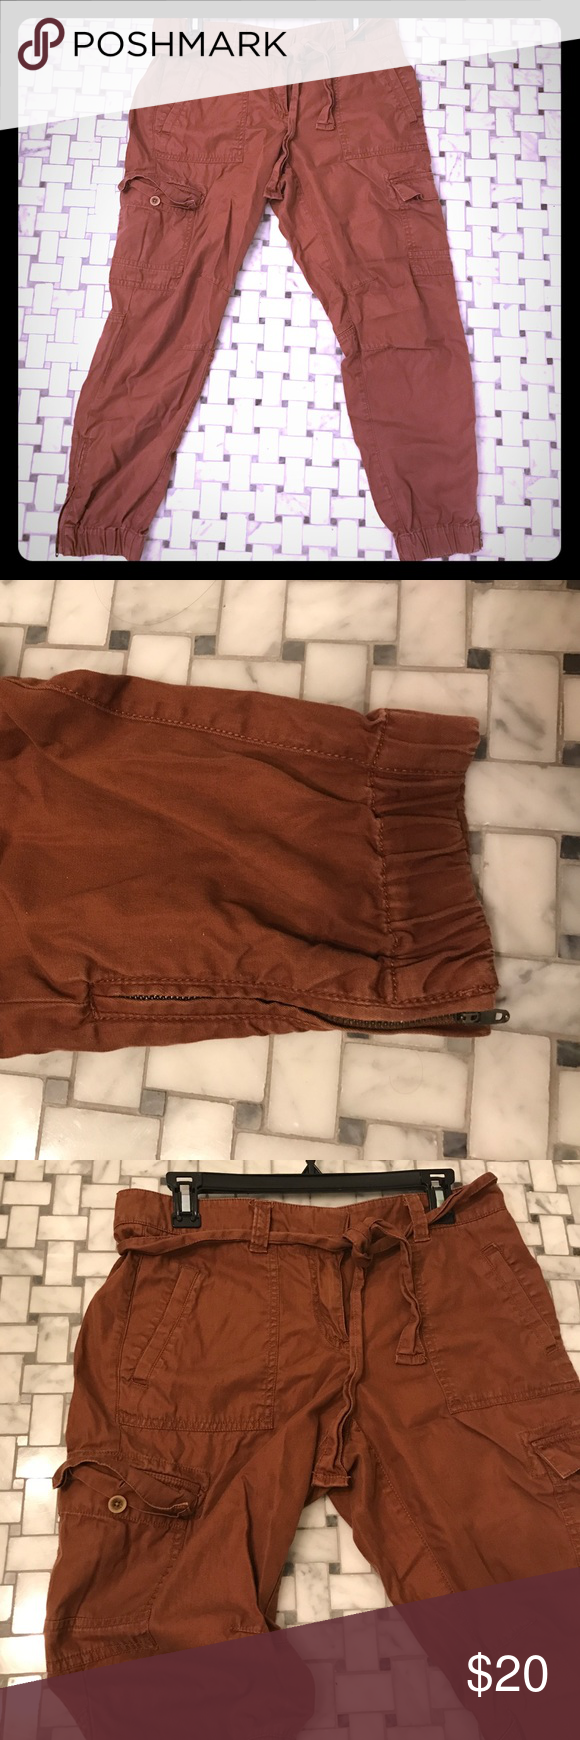 Cargo crops Cargo crop pants with belt tie. Elastic ankle with zipper detail. Too big on me, recently lost weight and sad to let go because they are really comfy to throw on for the weekends. LOFT Pants Ankle & Cropped